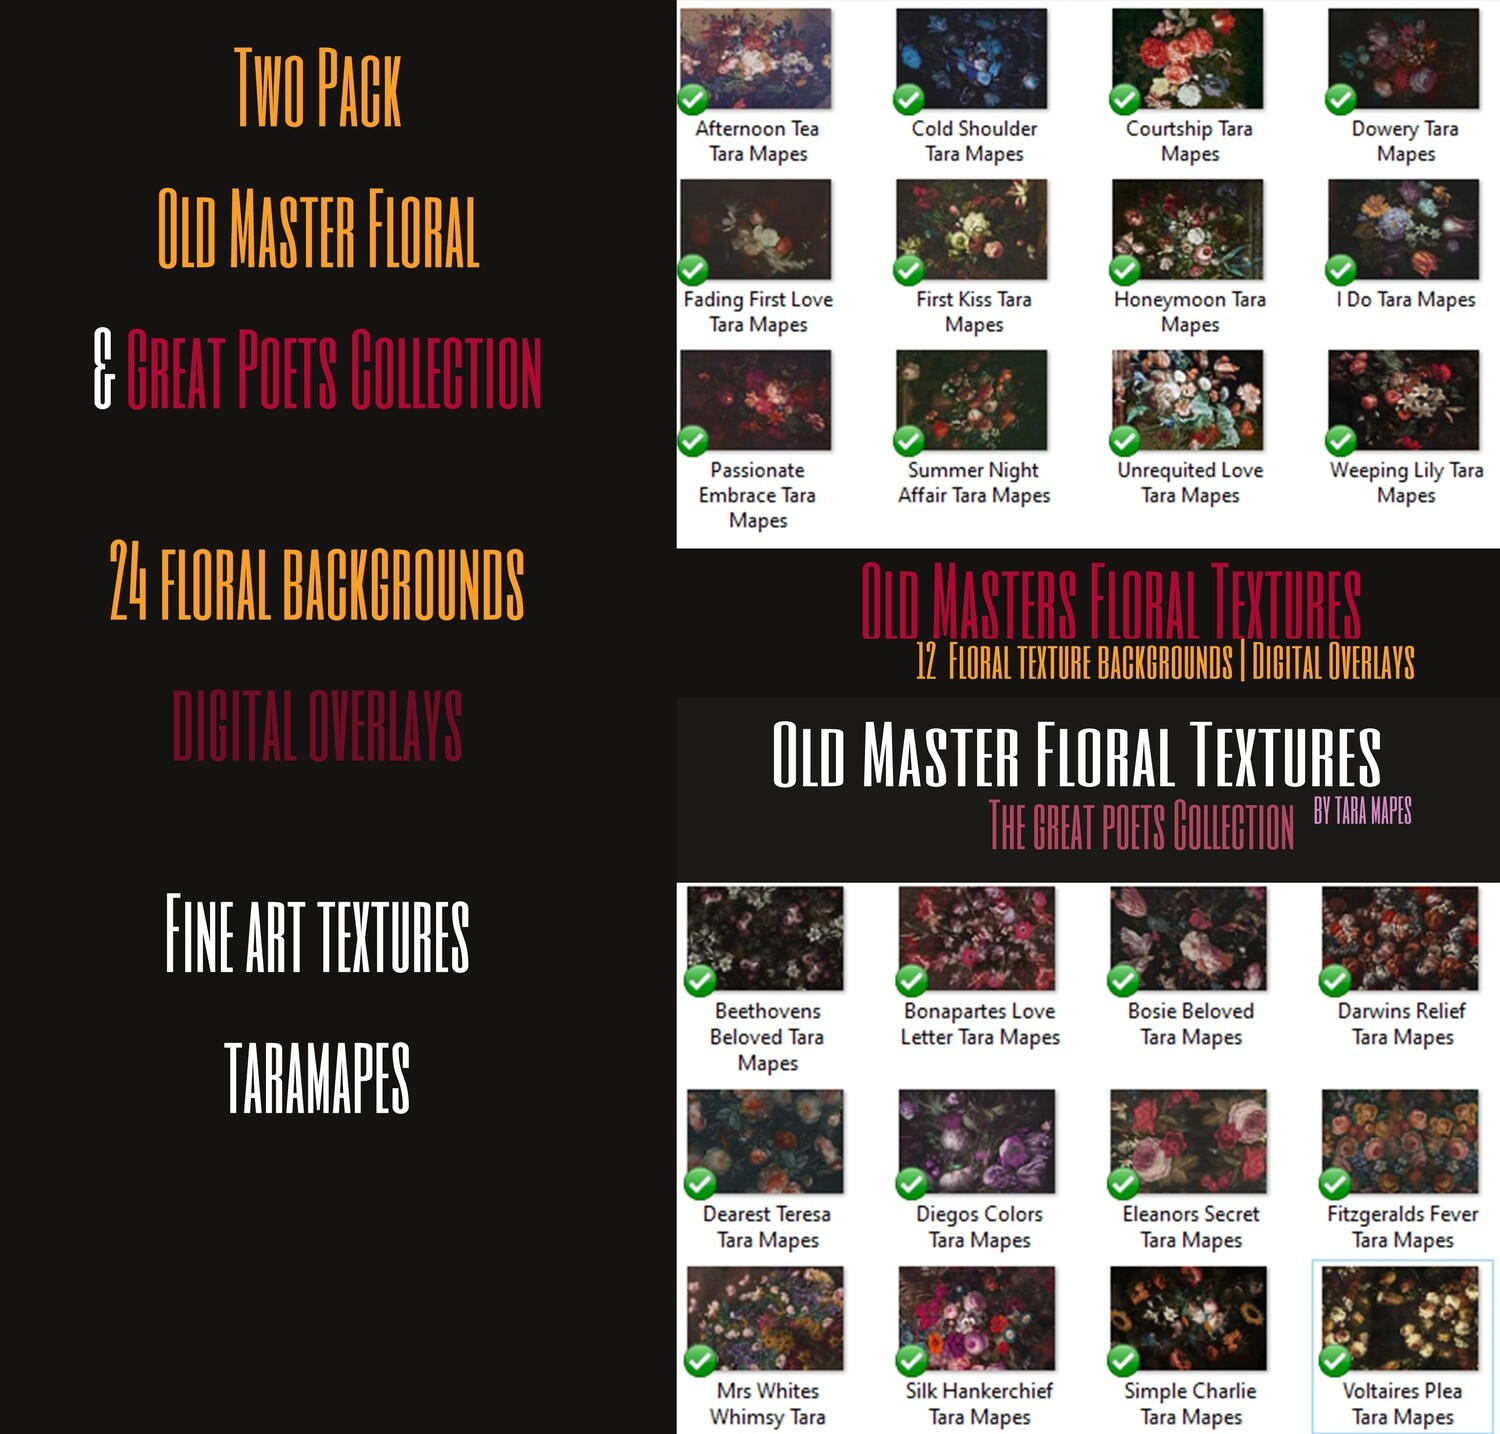 BUNDLE TEXTURES 2 PACK of Old Masters Floral Textures Photoshop Overlays by Tara Mapes